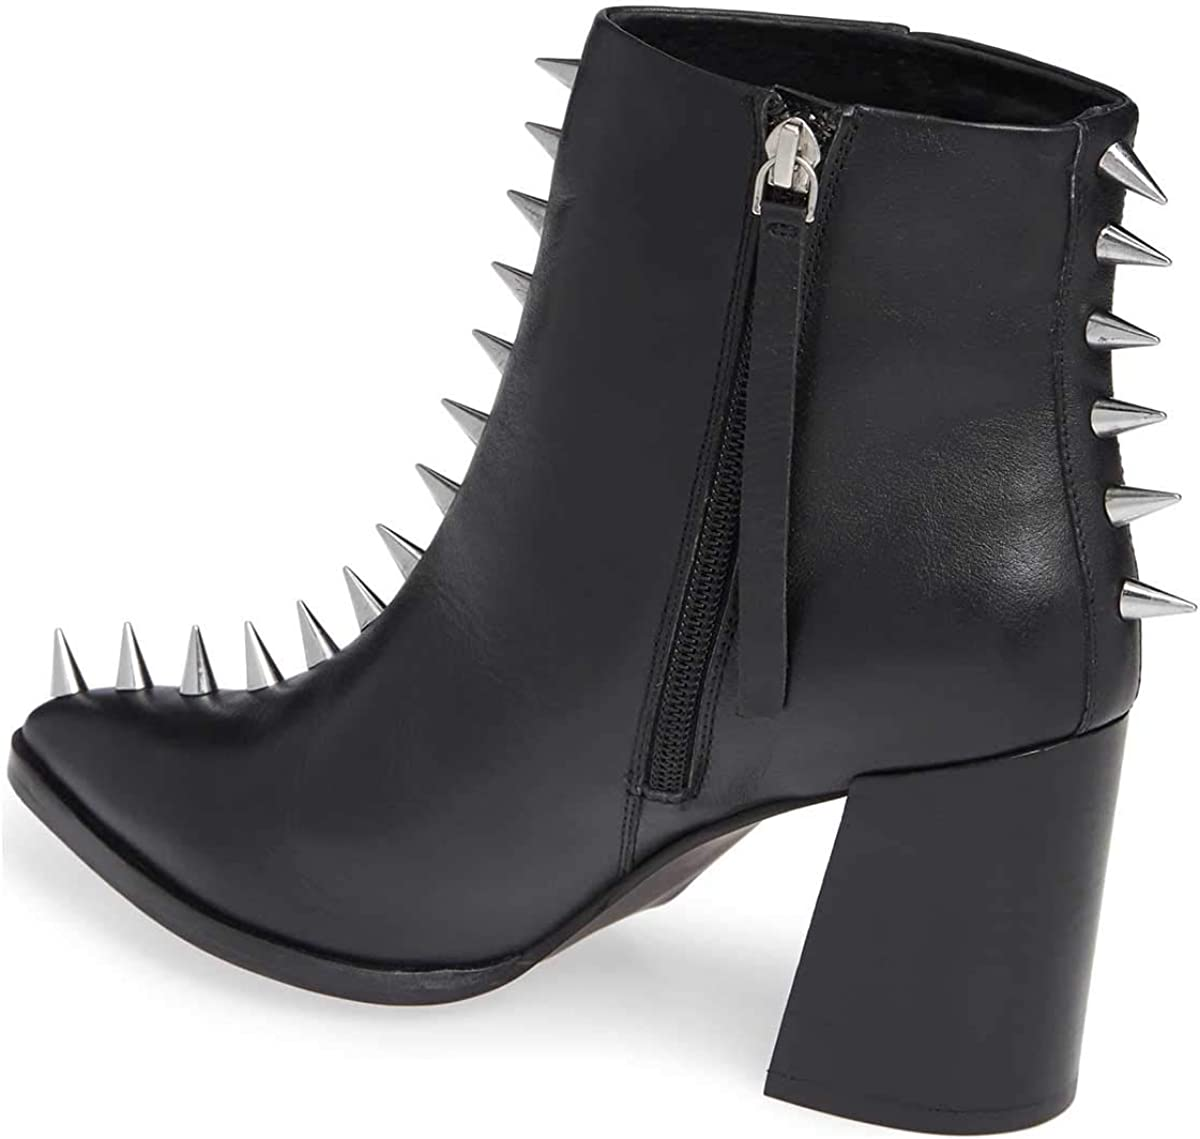 XYD Women Stylish Pointy Toe Spiked Rivet Studded Ankle Boots Mid Block Heel Side Zippers Party Dress Short Booties